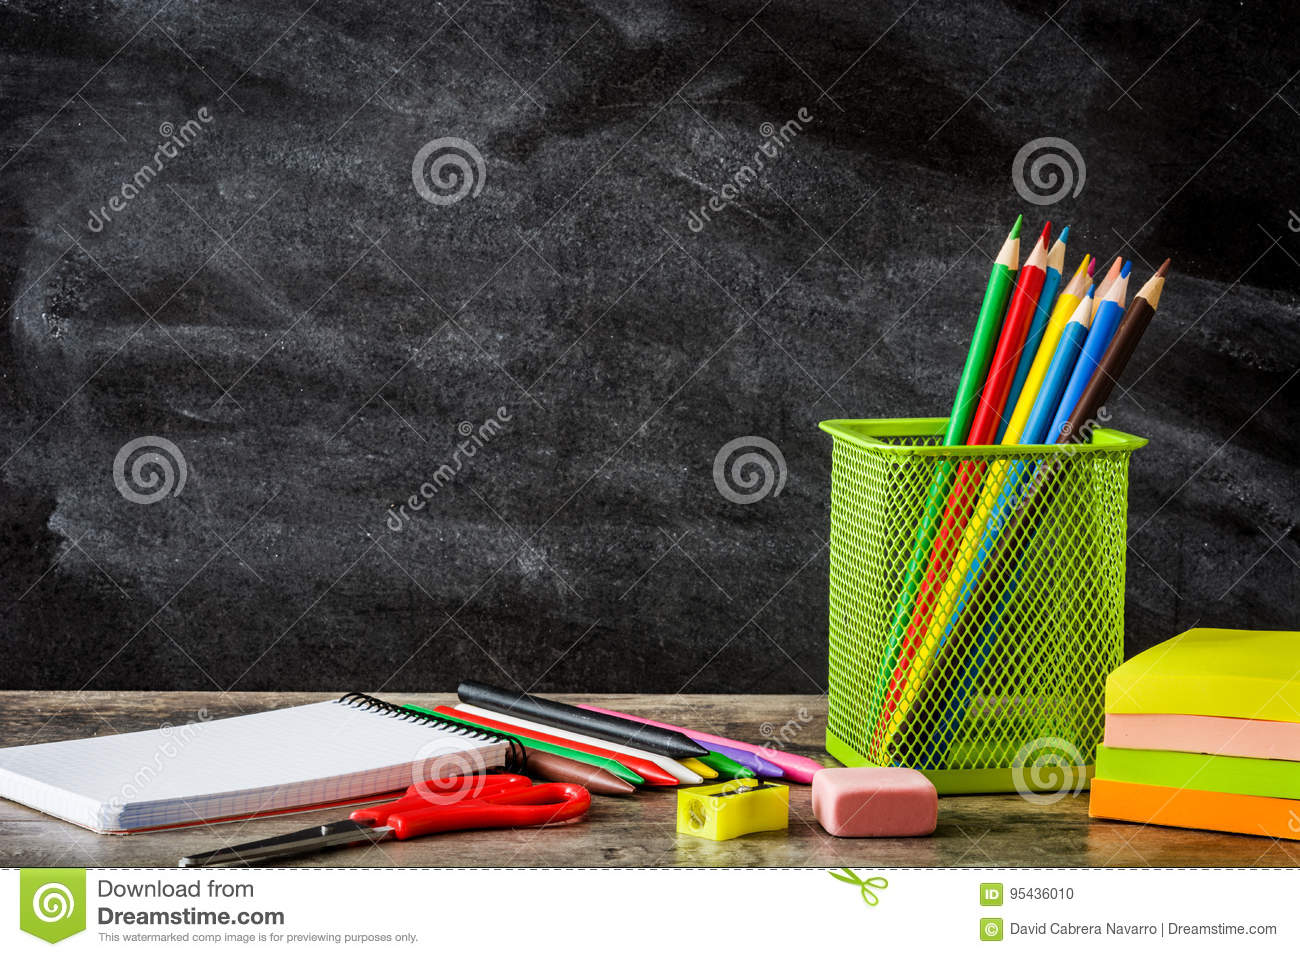 School supplies on wooden table and blackboard background. Back to school concept.